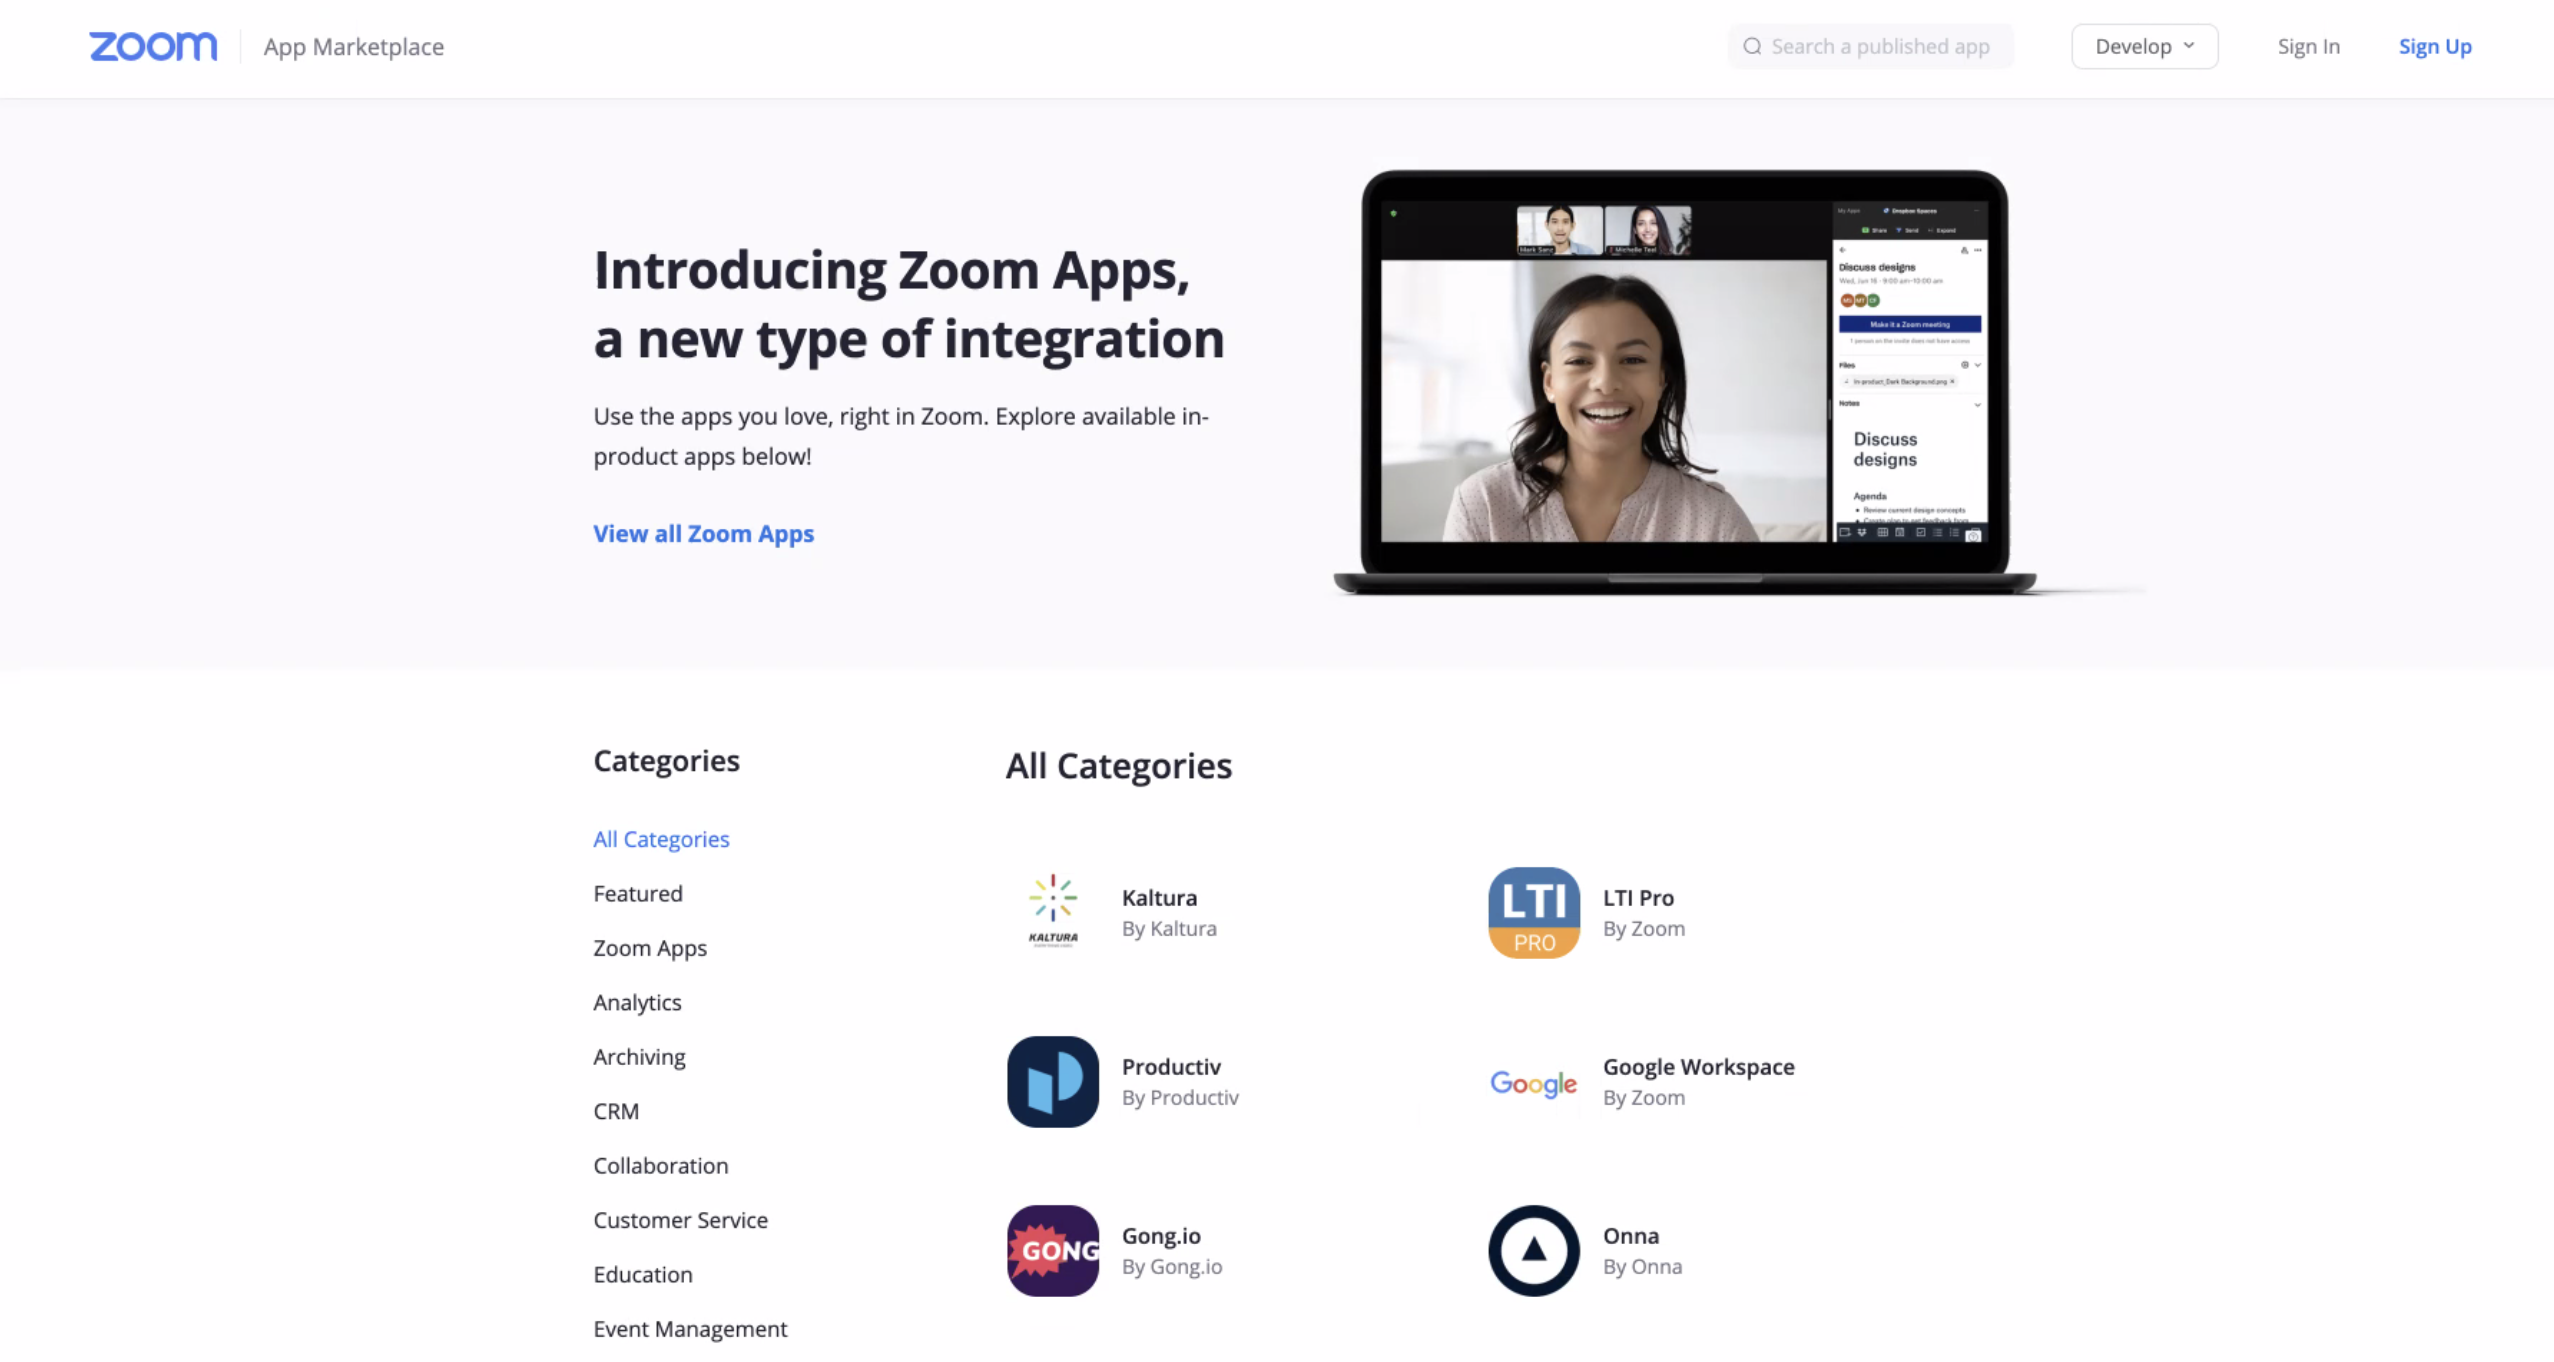 The Zoom login page.